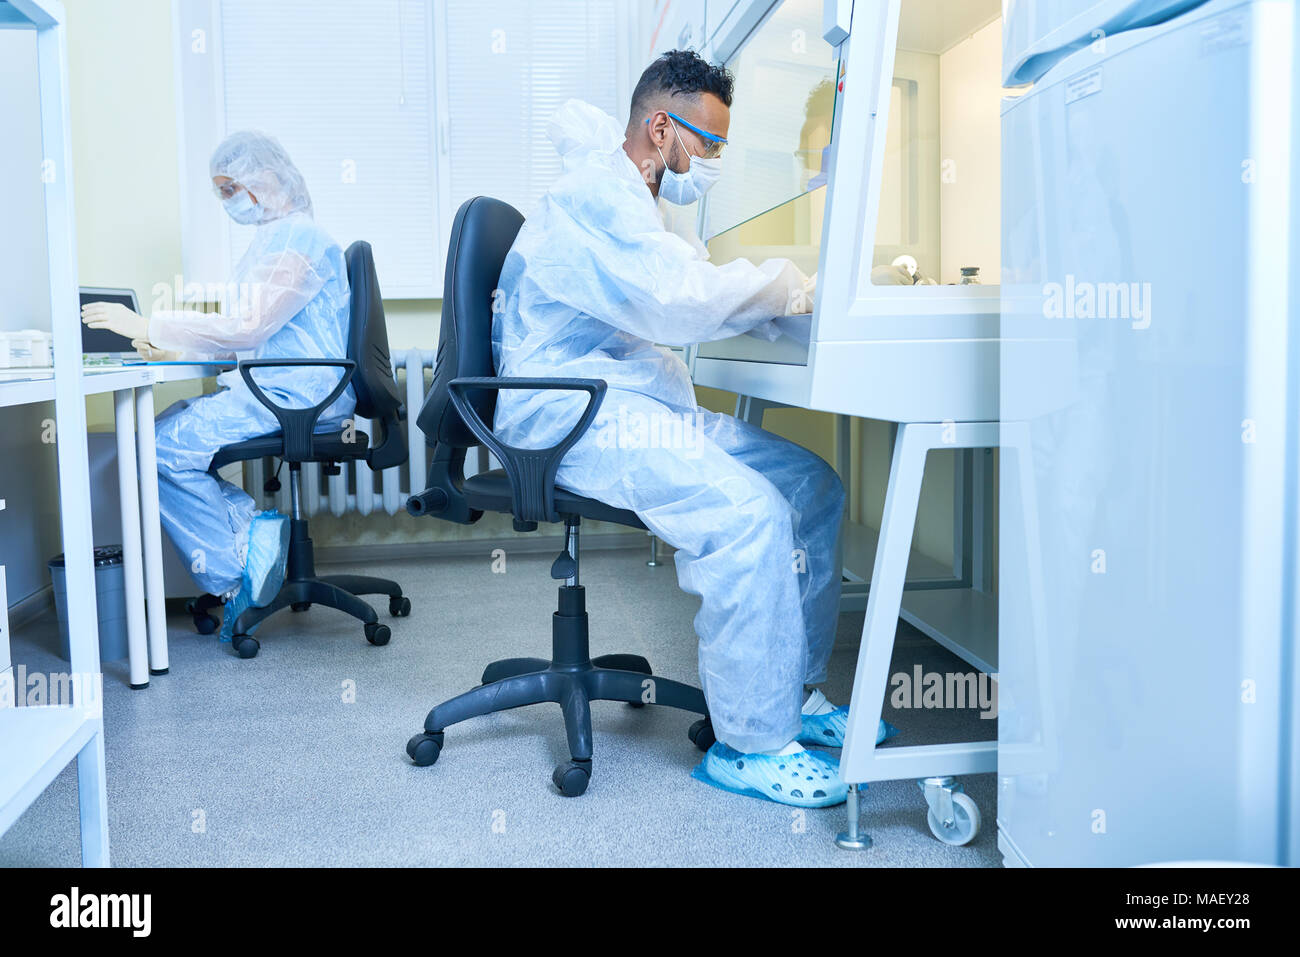 Risky experiment in laboratory - Stock Image